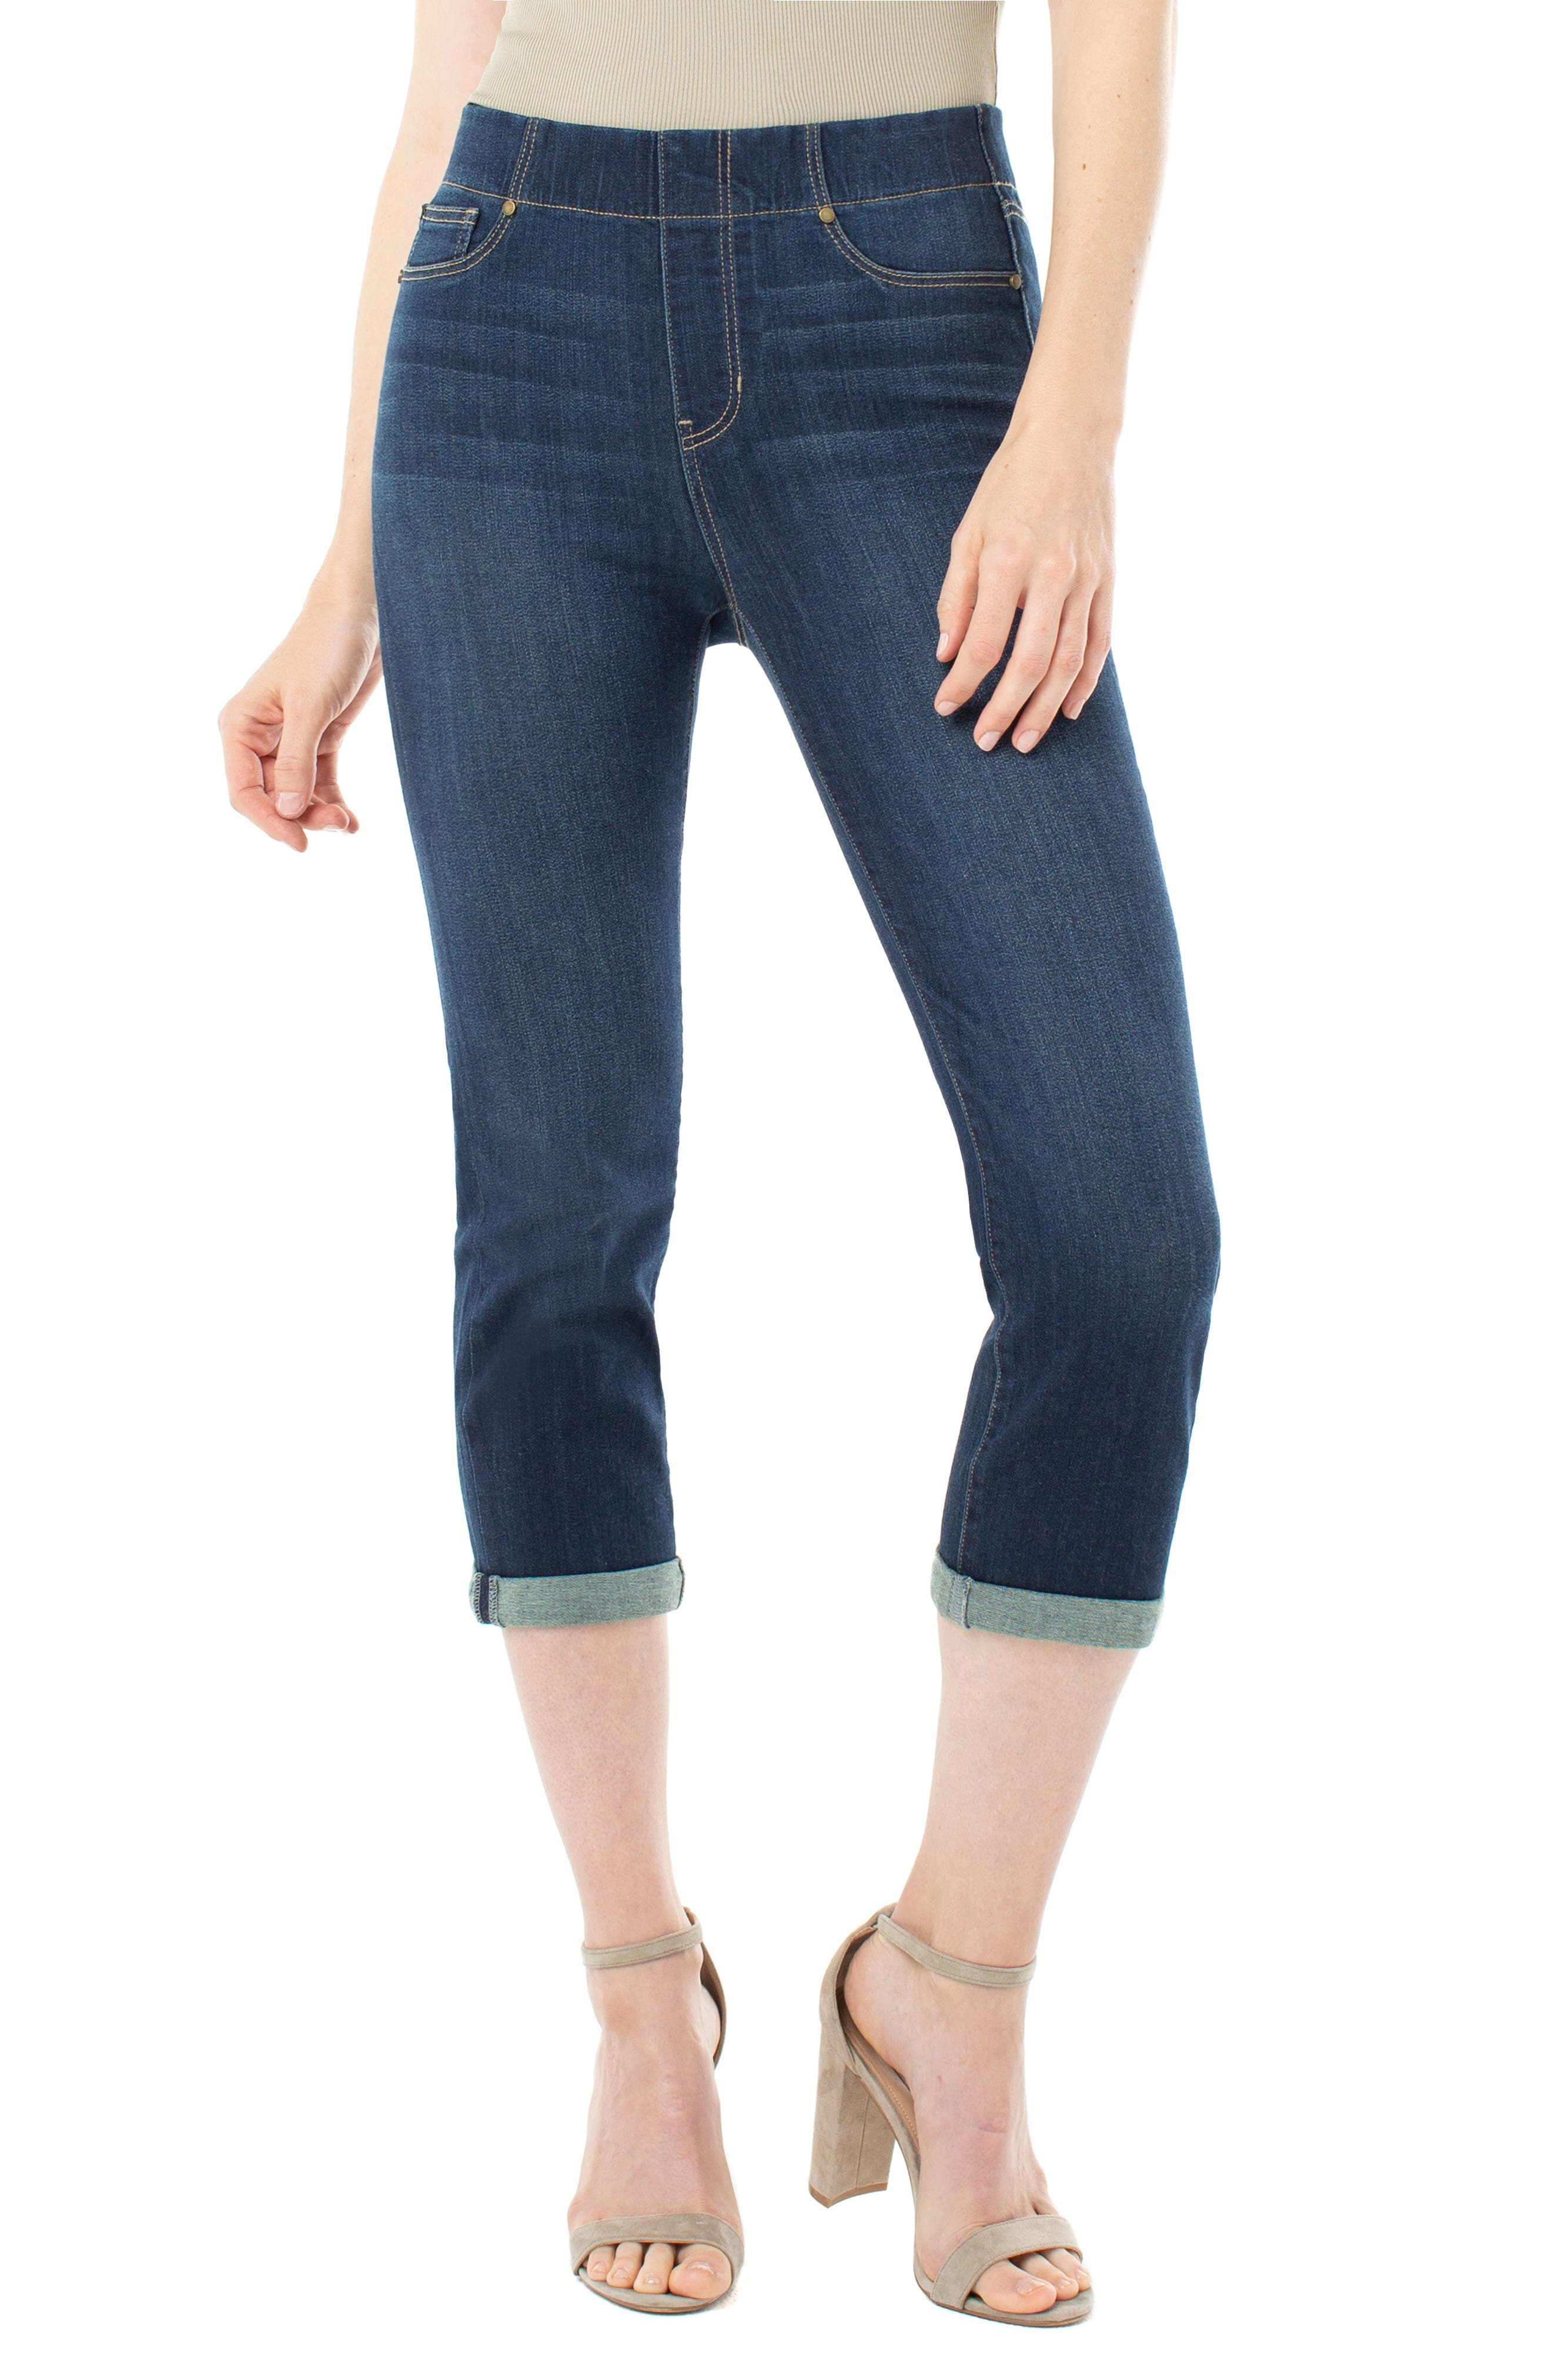 NEW NYDJ Not Your Daughters Jeans pants Skinny ANKLE Angie Monaco blue 6 12 16